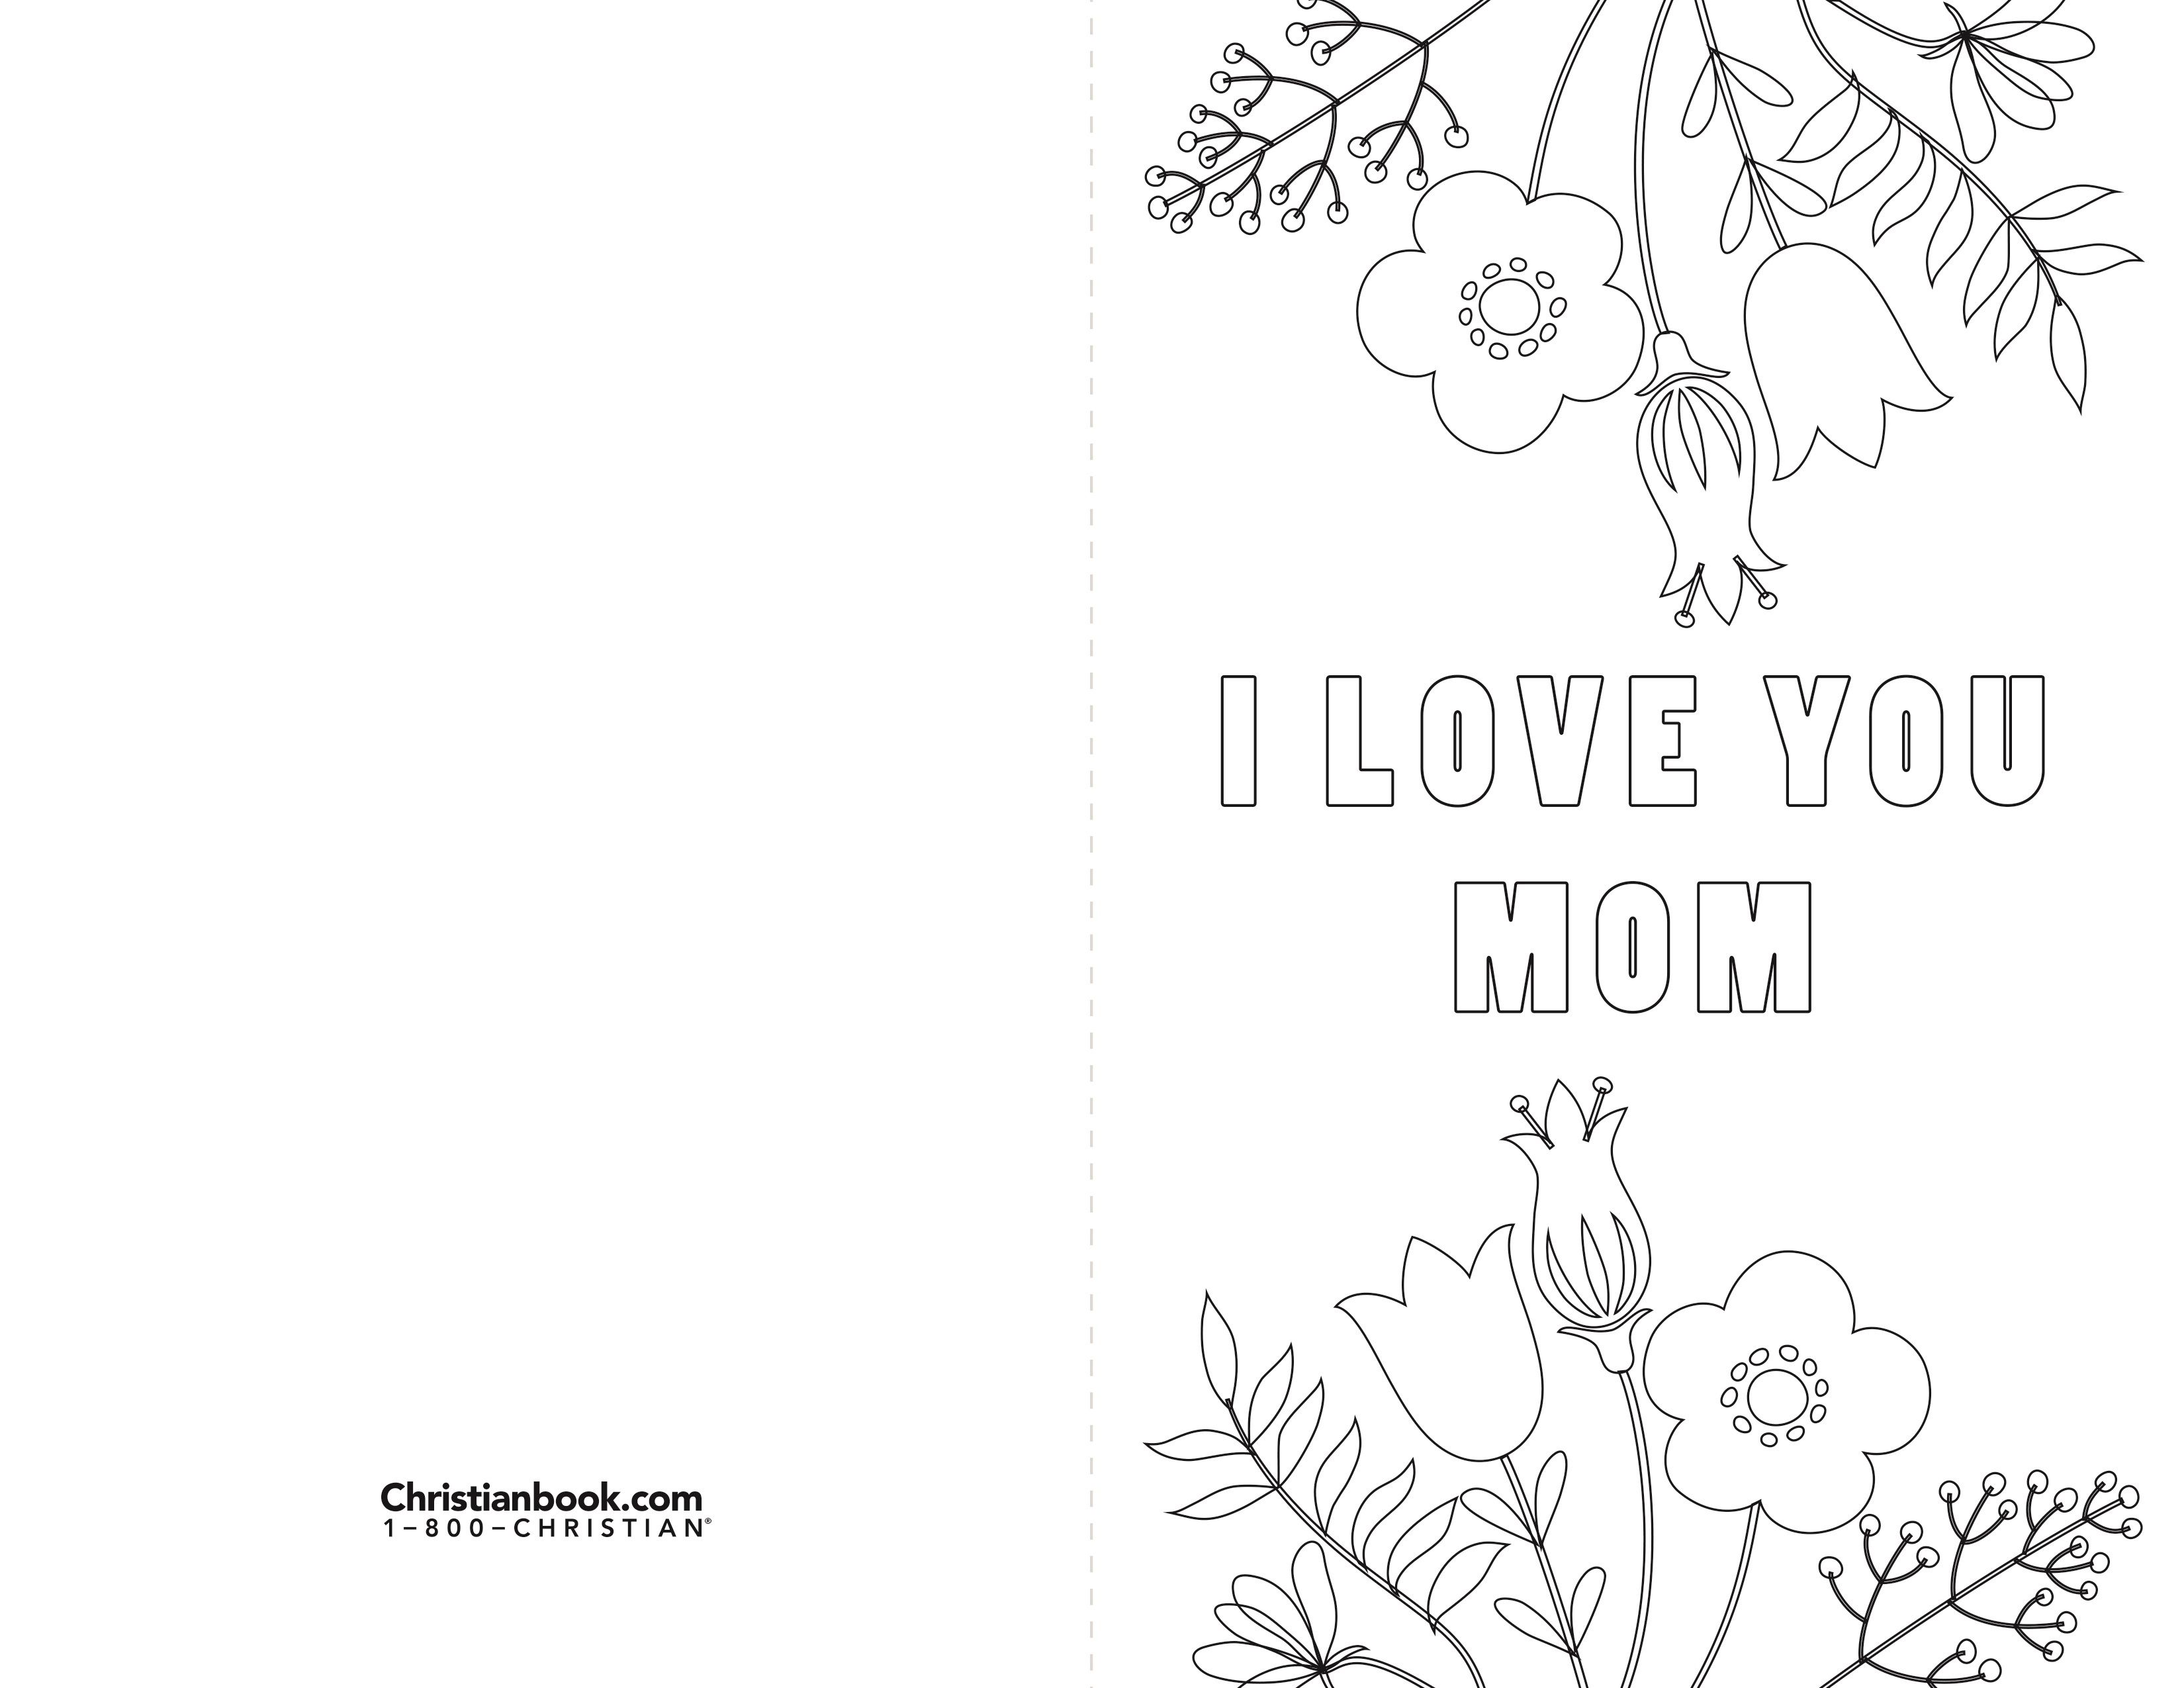 FREE coloring page card for you to print out & share for